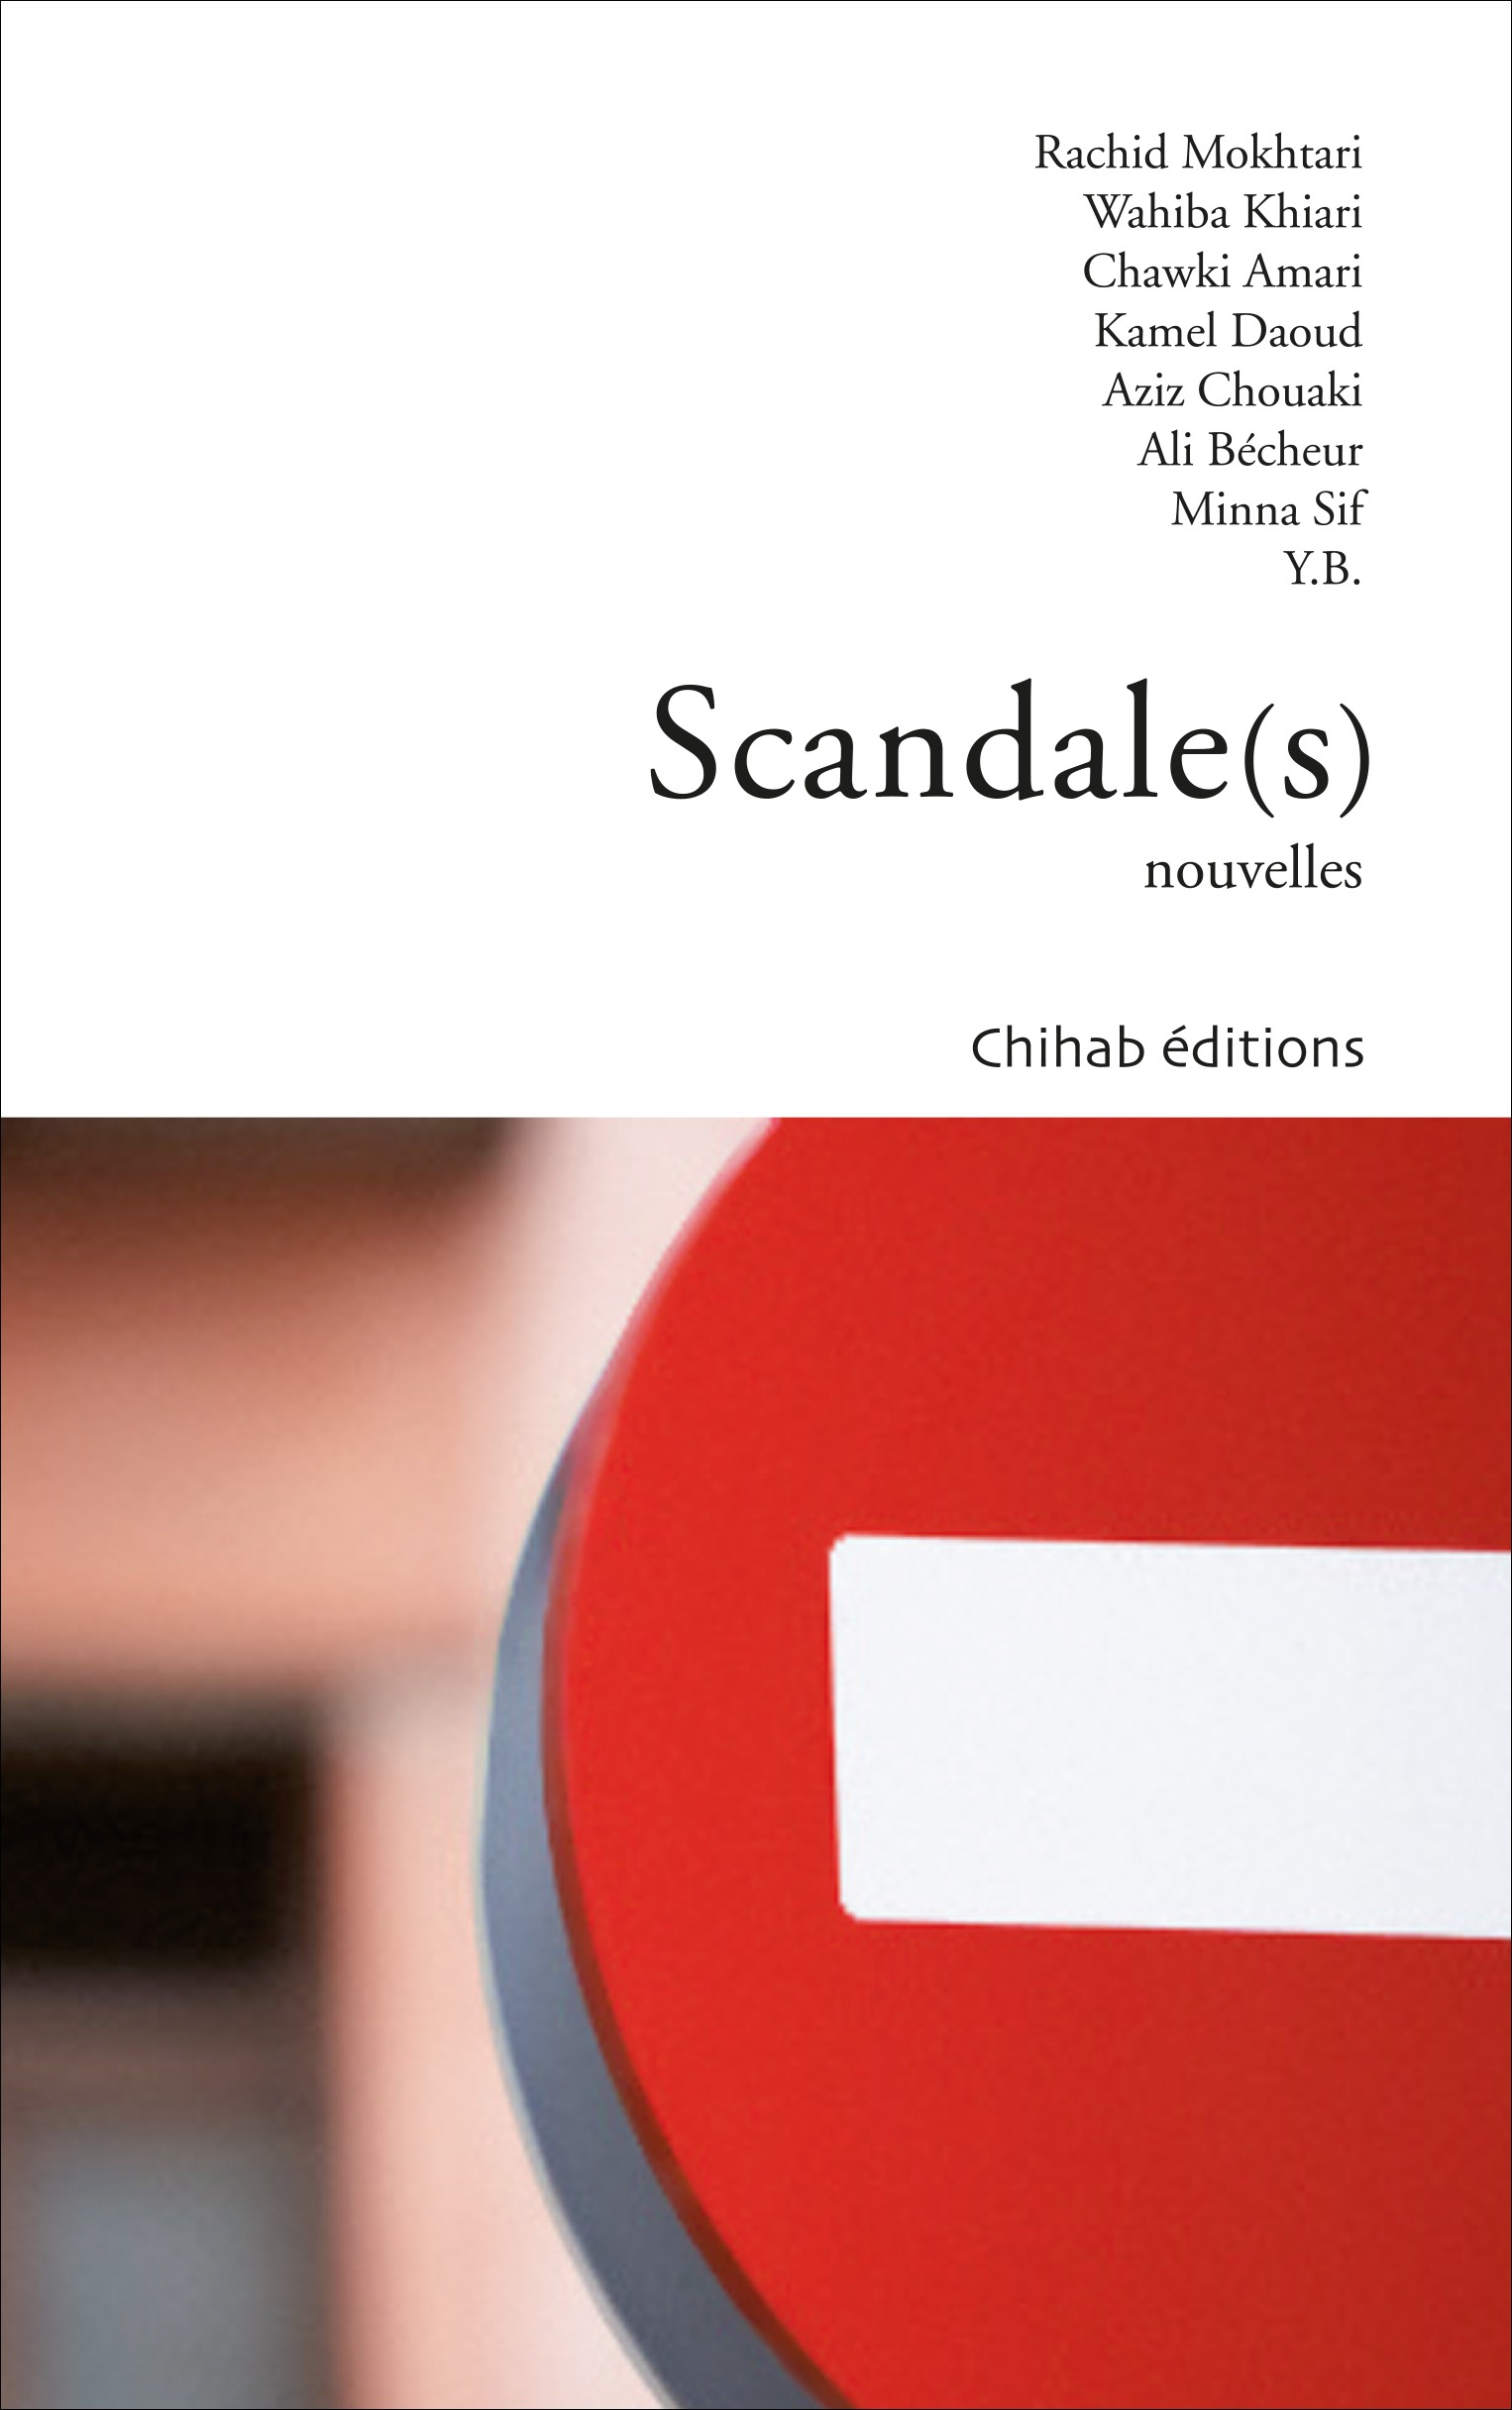 SCANDALE(S)